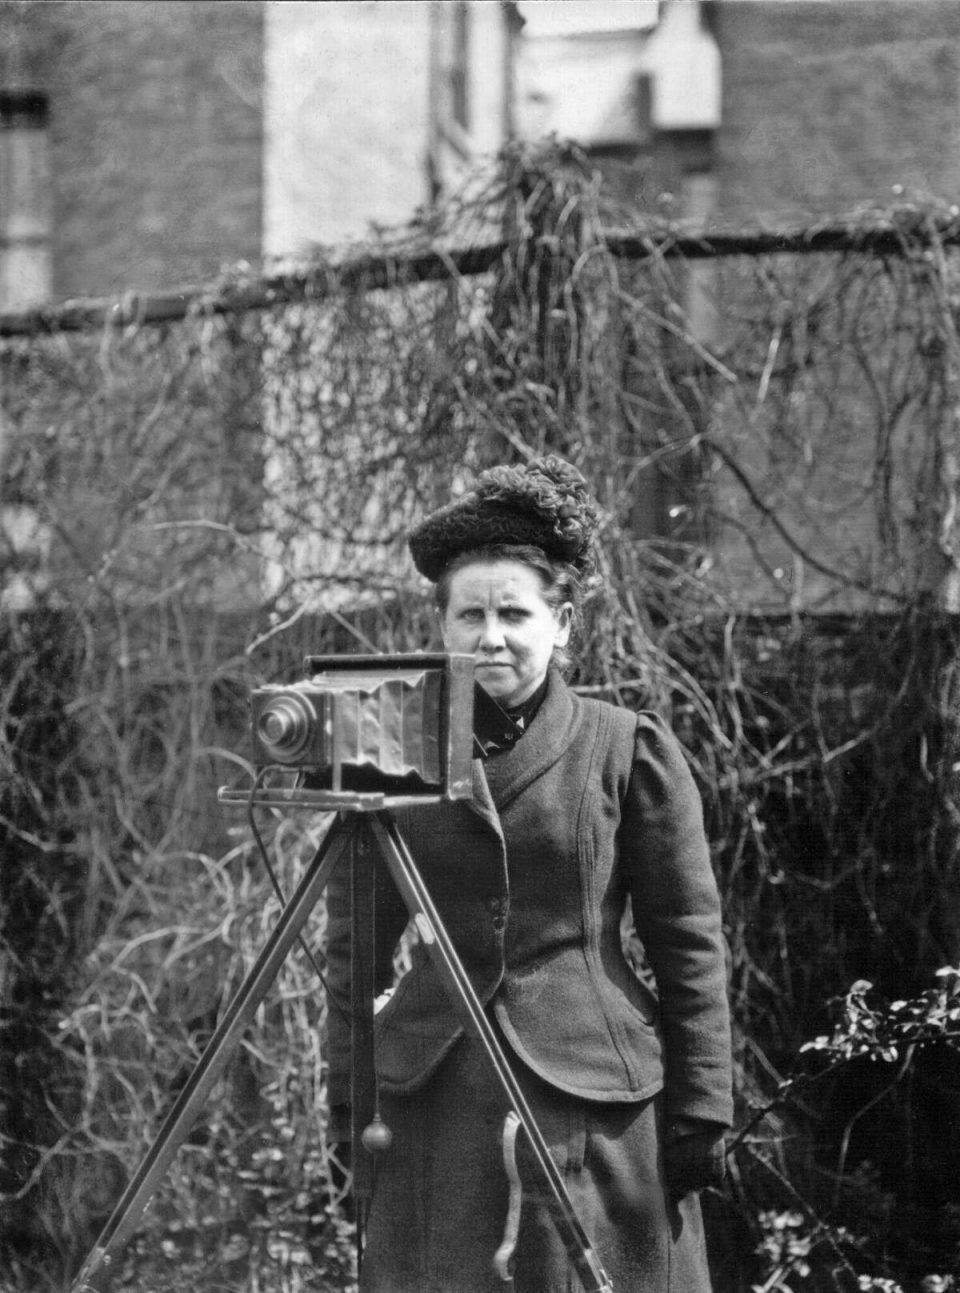 Christina Broom, Britain's first female press photographer c. 1910, photographed by her daughter and assistant, Winifred.